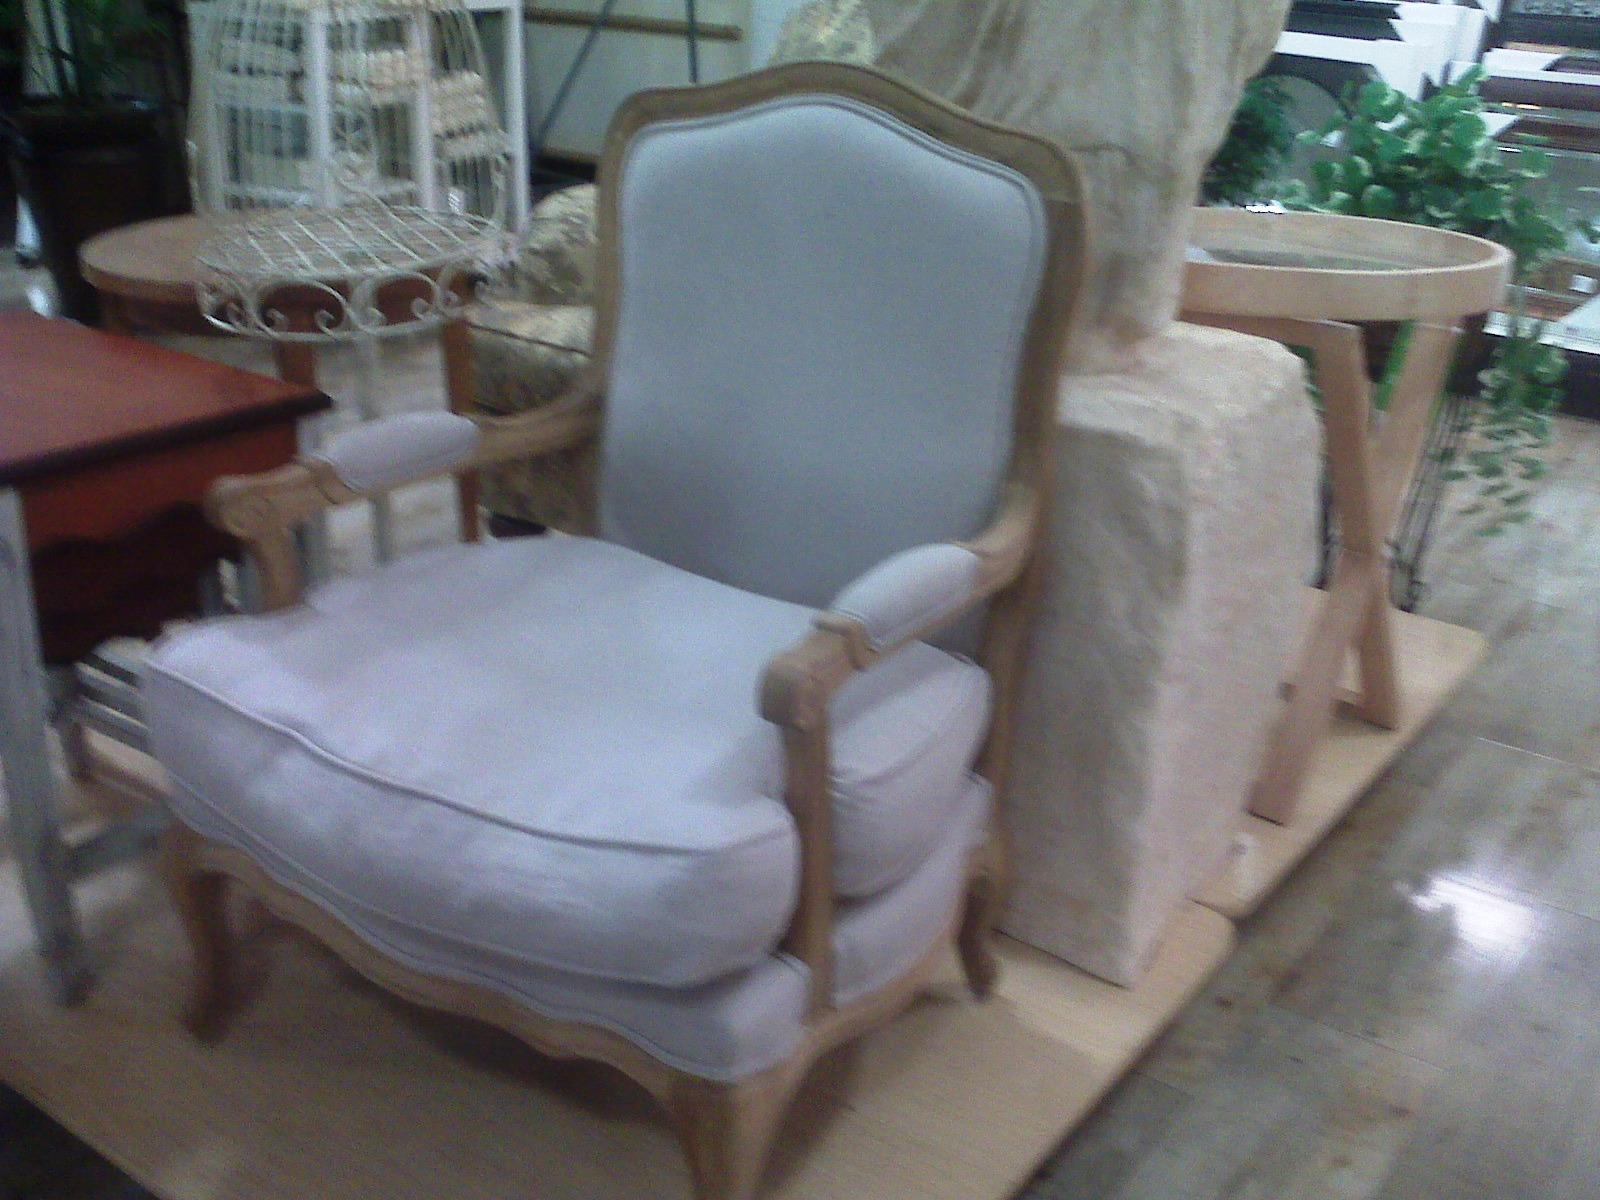 Just inDreamy Bleached Wood Furniture at Home Goods Store Karen